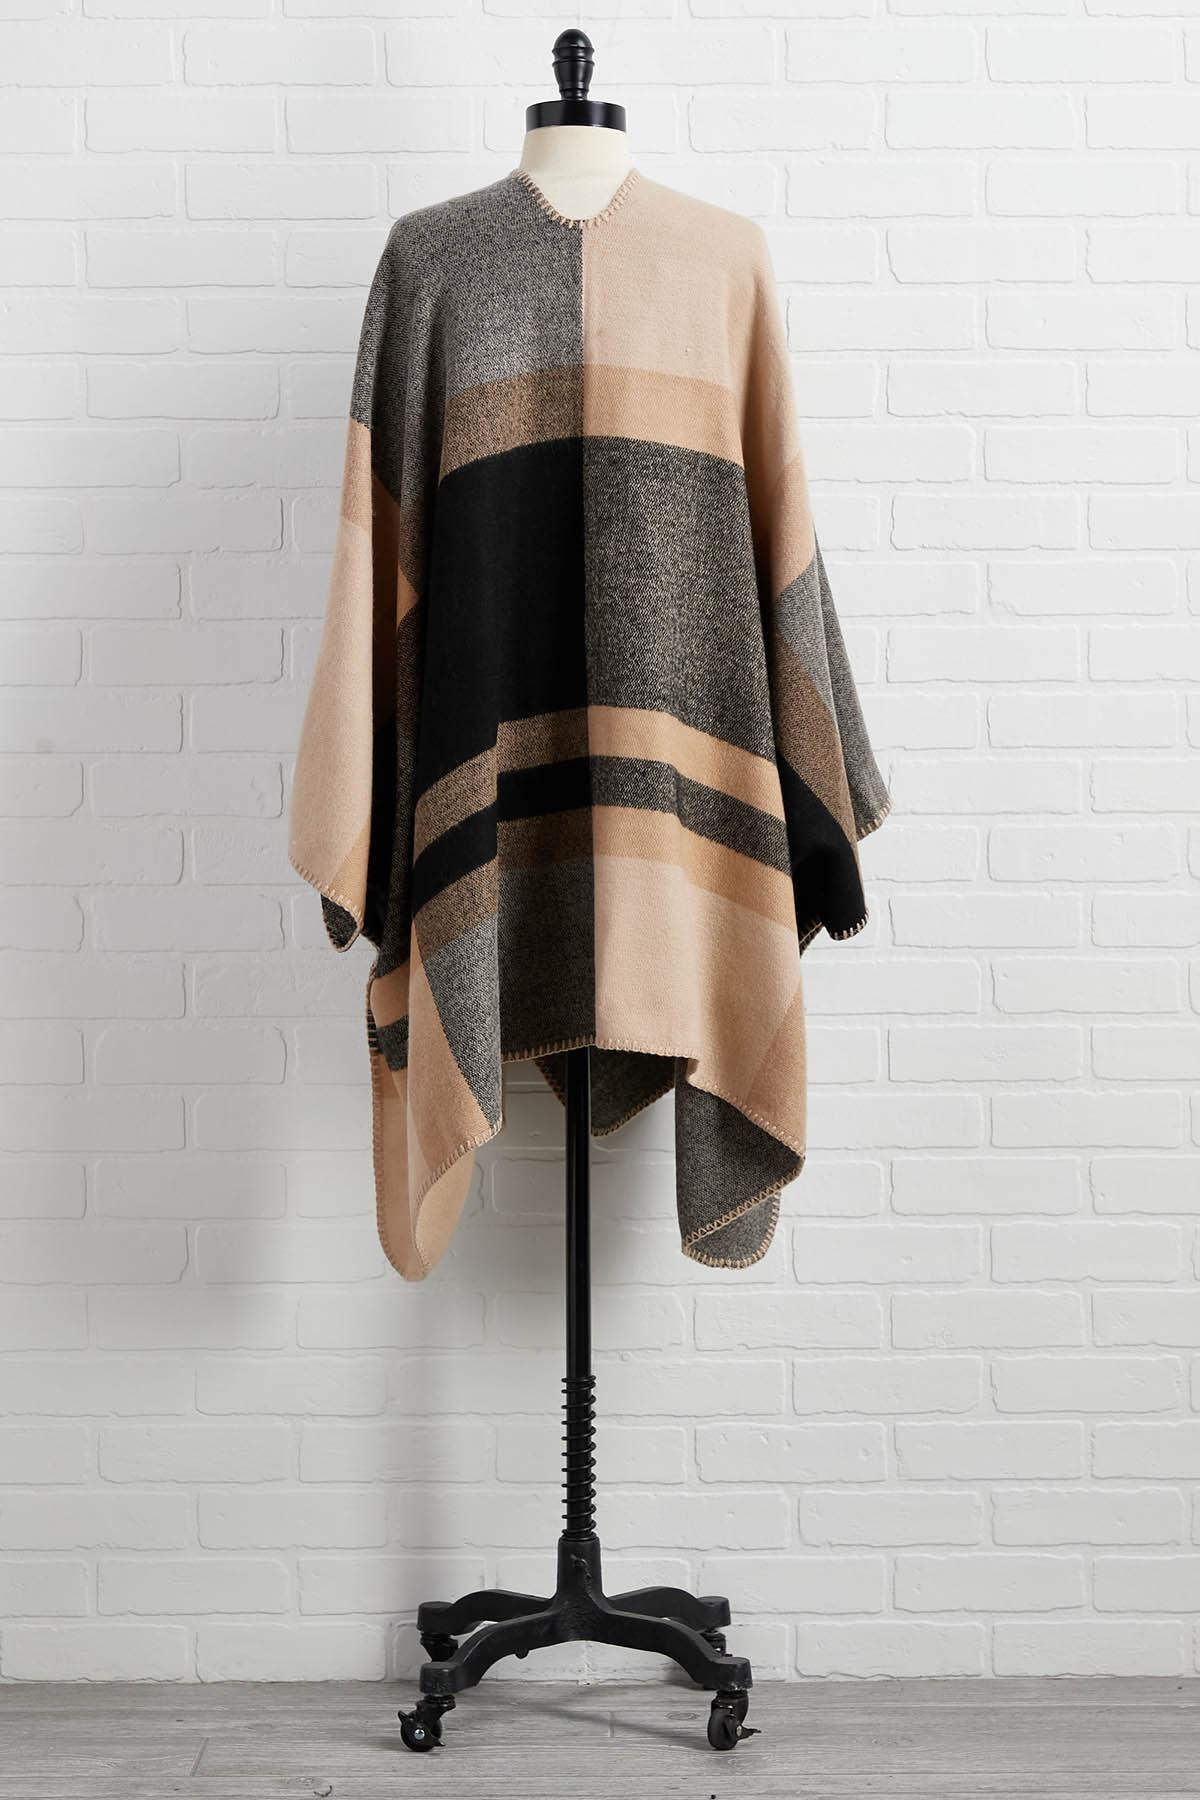 Iced Latte Poncho